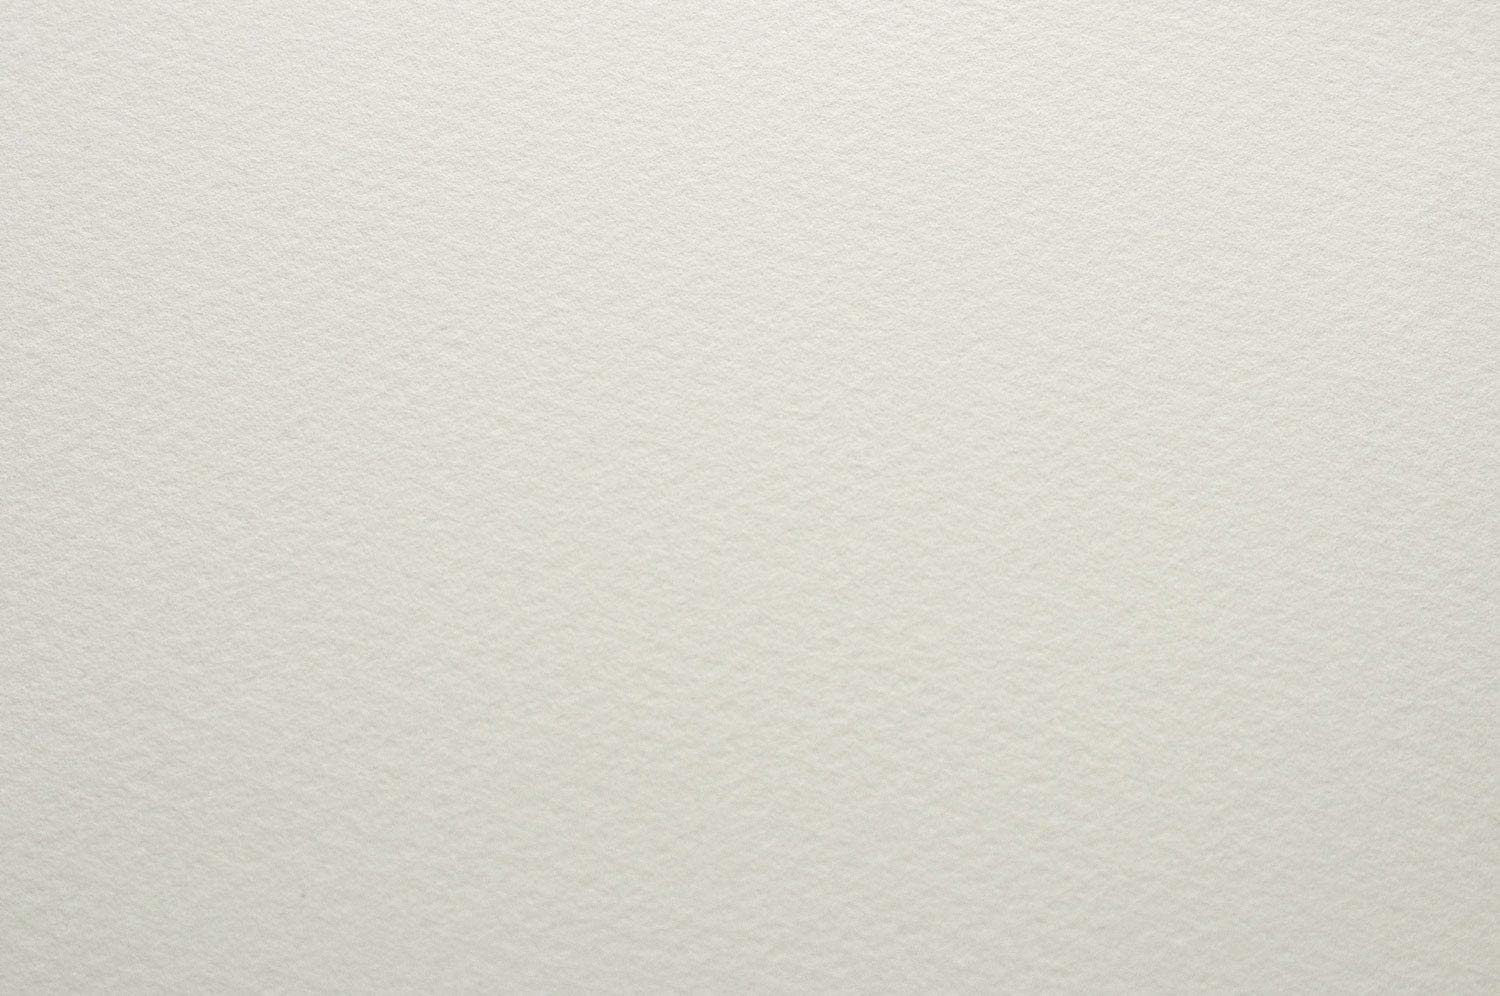 1 x Saunders Waterford 300gsm (140lbs) - Hot Pressed High White - Full Imperial